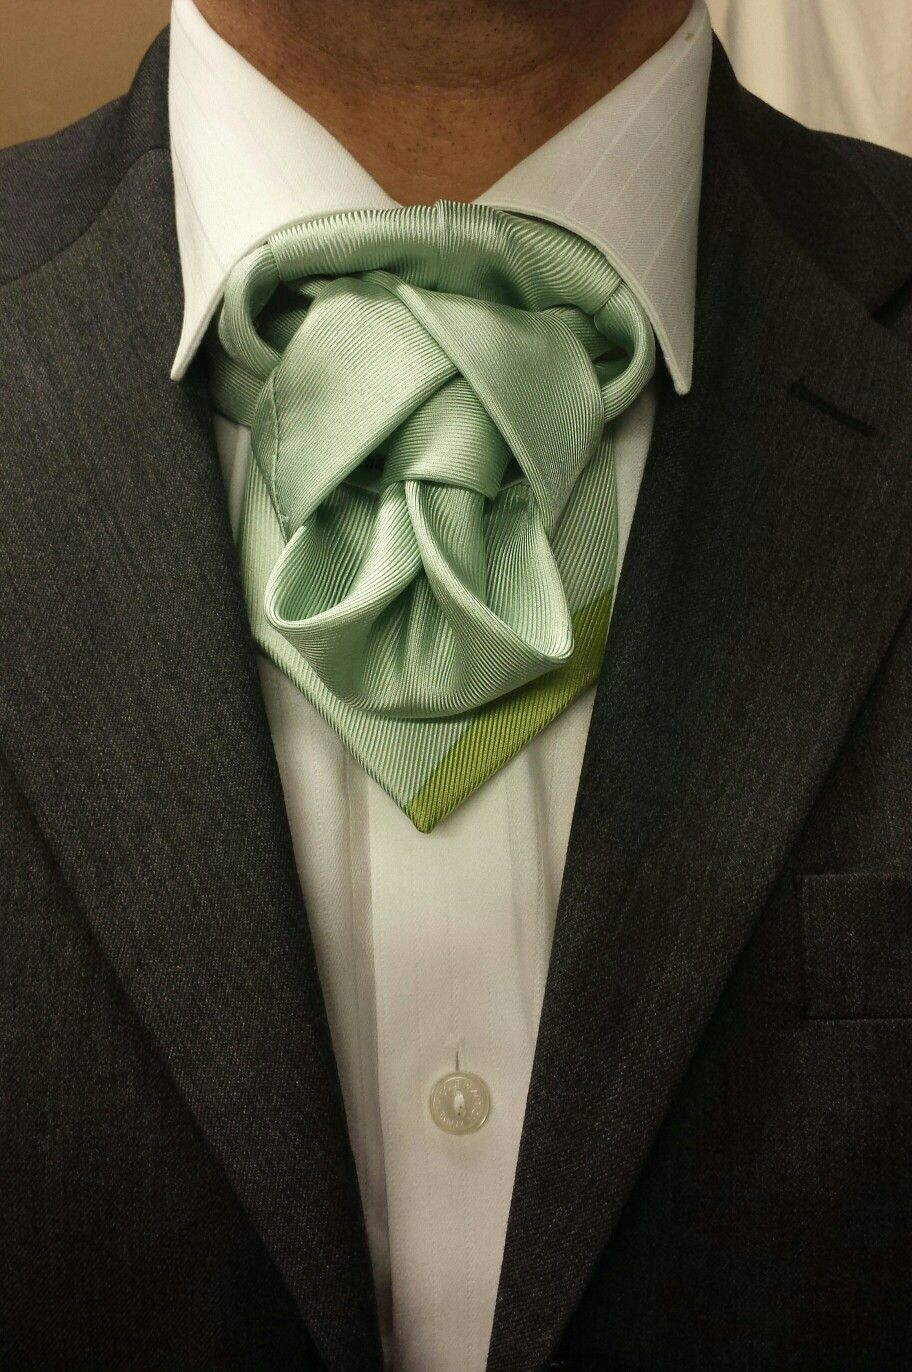 Find This Pin And More On Danny's Tie Knots